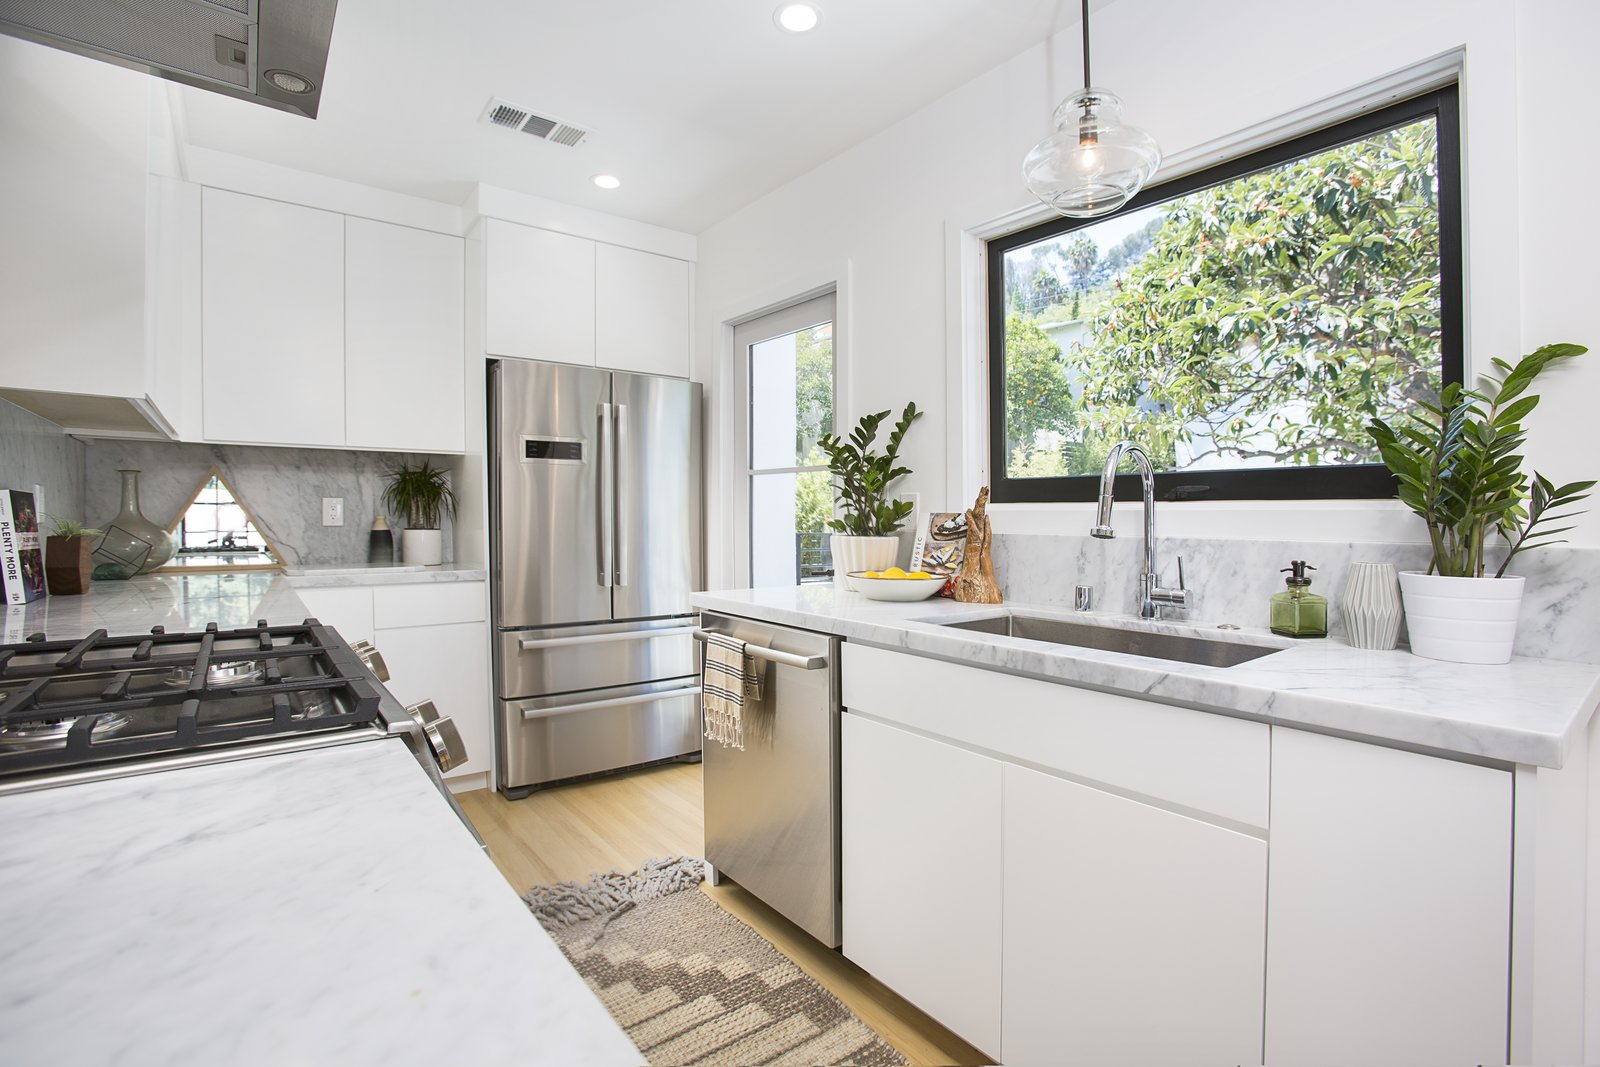 Kitchen, White, Marble, Wood, Ceiling, Recessed, Pendant, Light Hardwood, Stone Slab, Refrigerator, Dishwasher, Range, Range Hood, and Undermount  Best Kitchen Refrigerator Undermount Pendant Recessed Stone Slab Ceiling Photos from Silverlake on Riverside Terrace